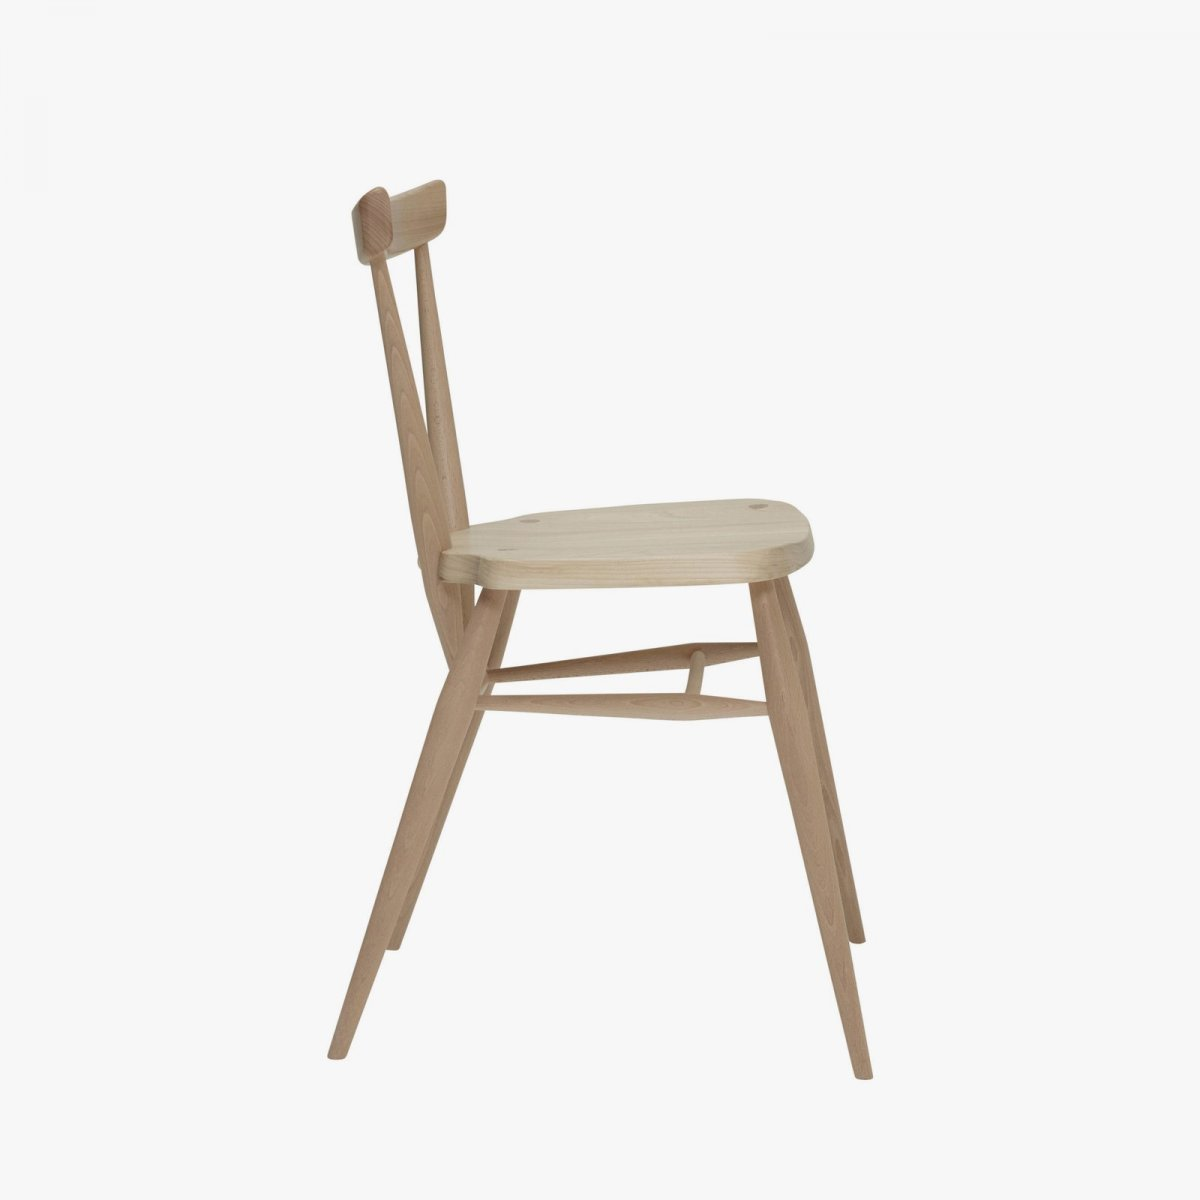 Originals Stacking Chair, front view, side view.